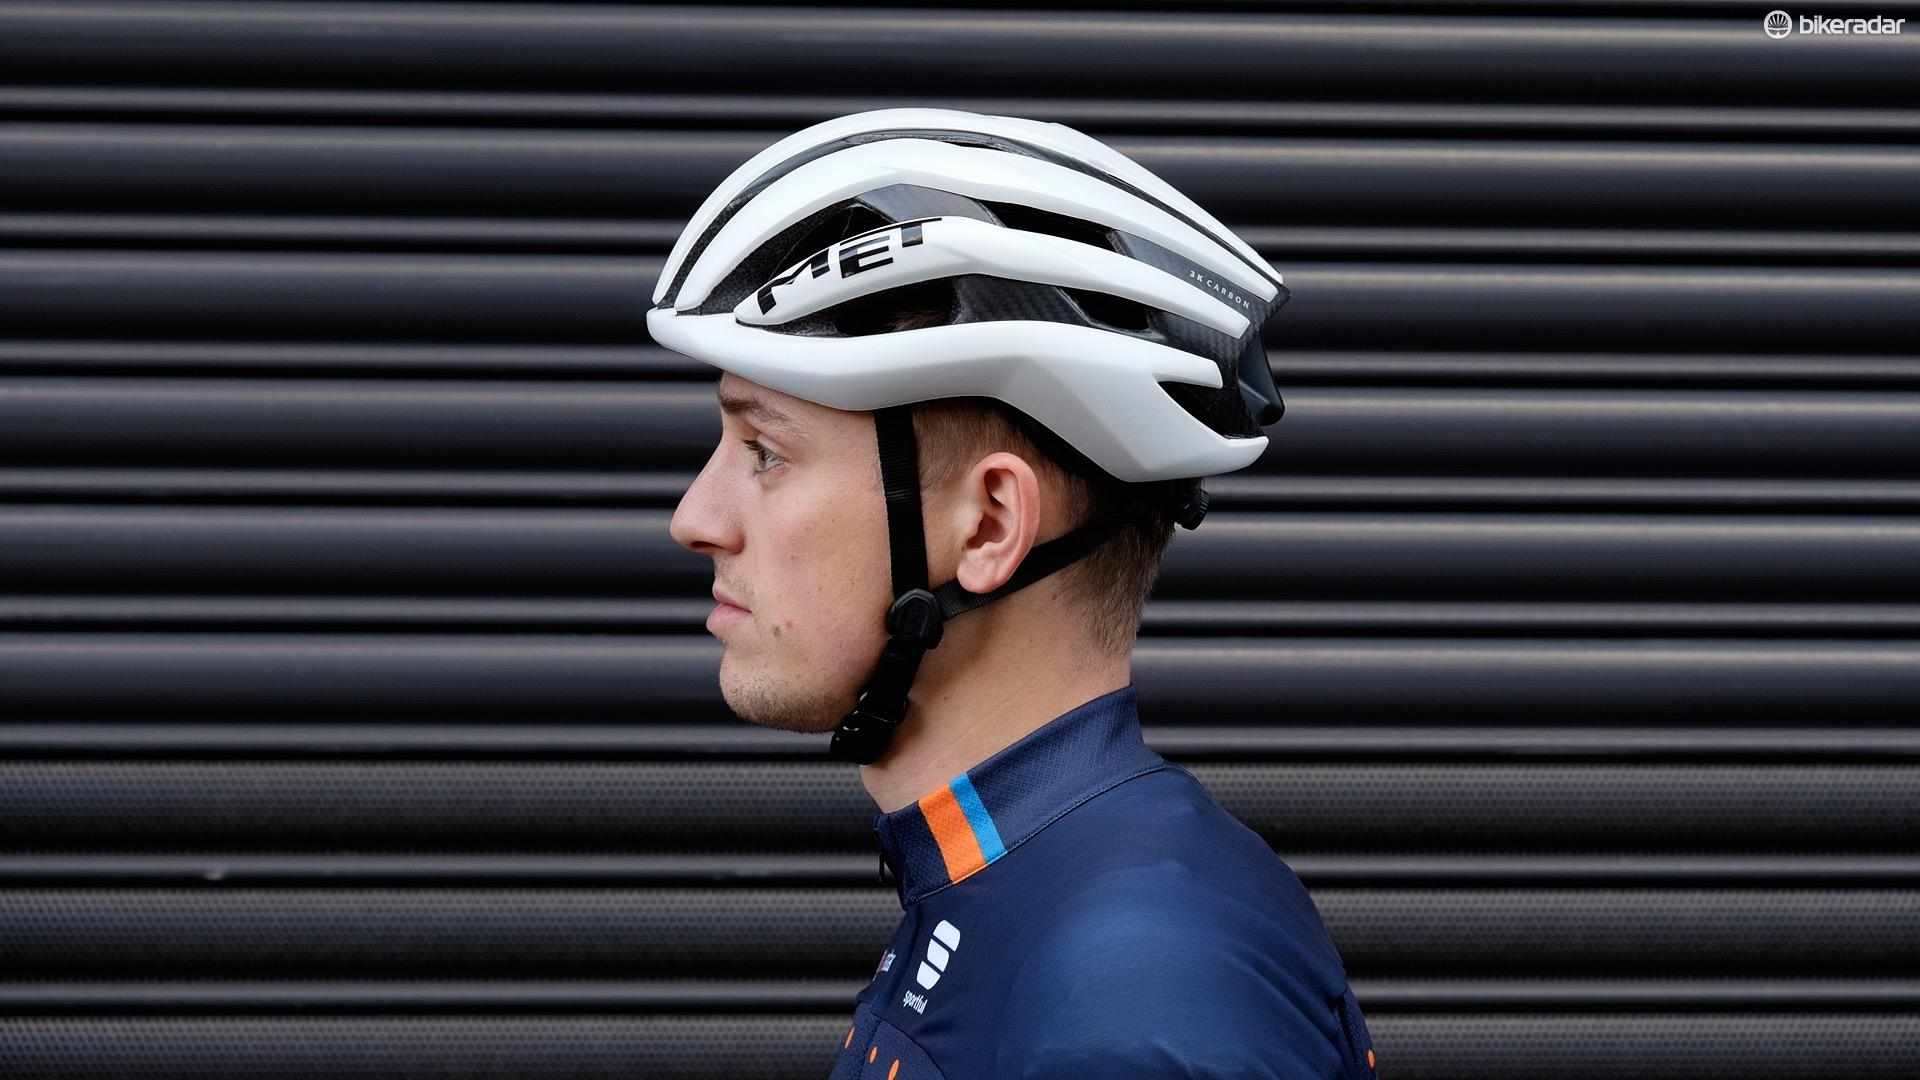 MET's Trenta 3K Carbon sits in the semi-aero helmet category